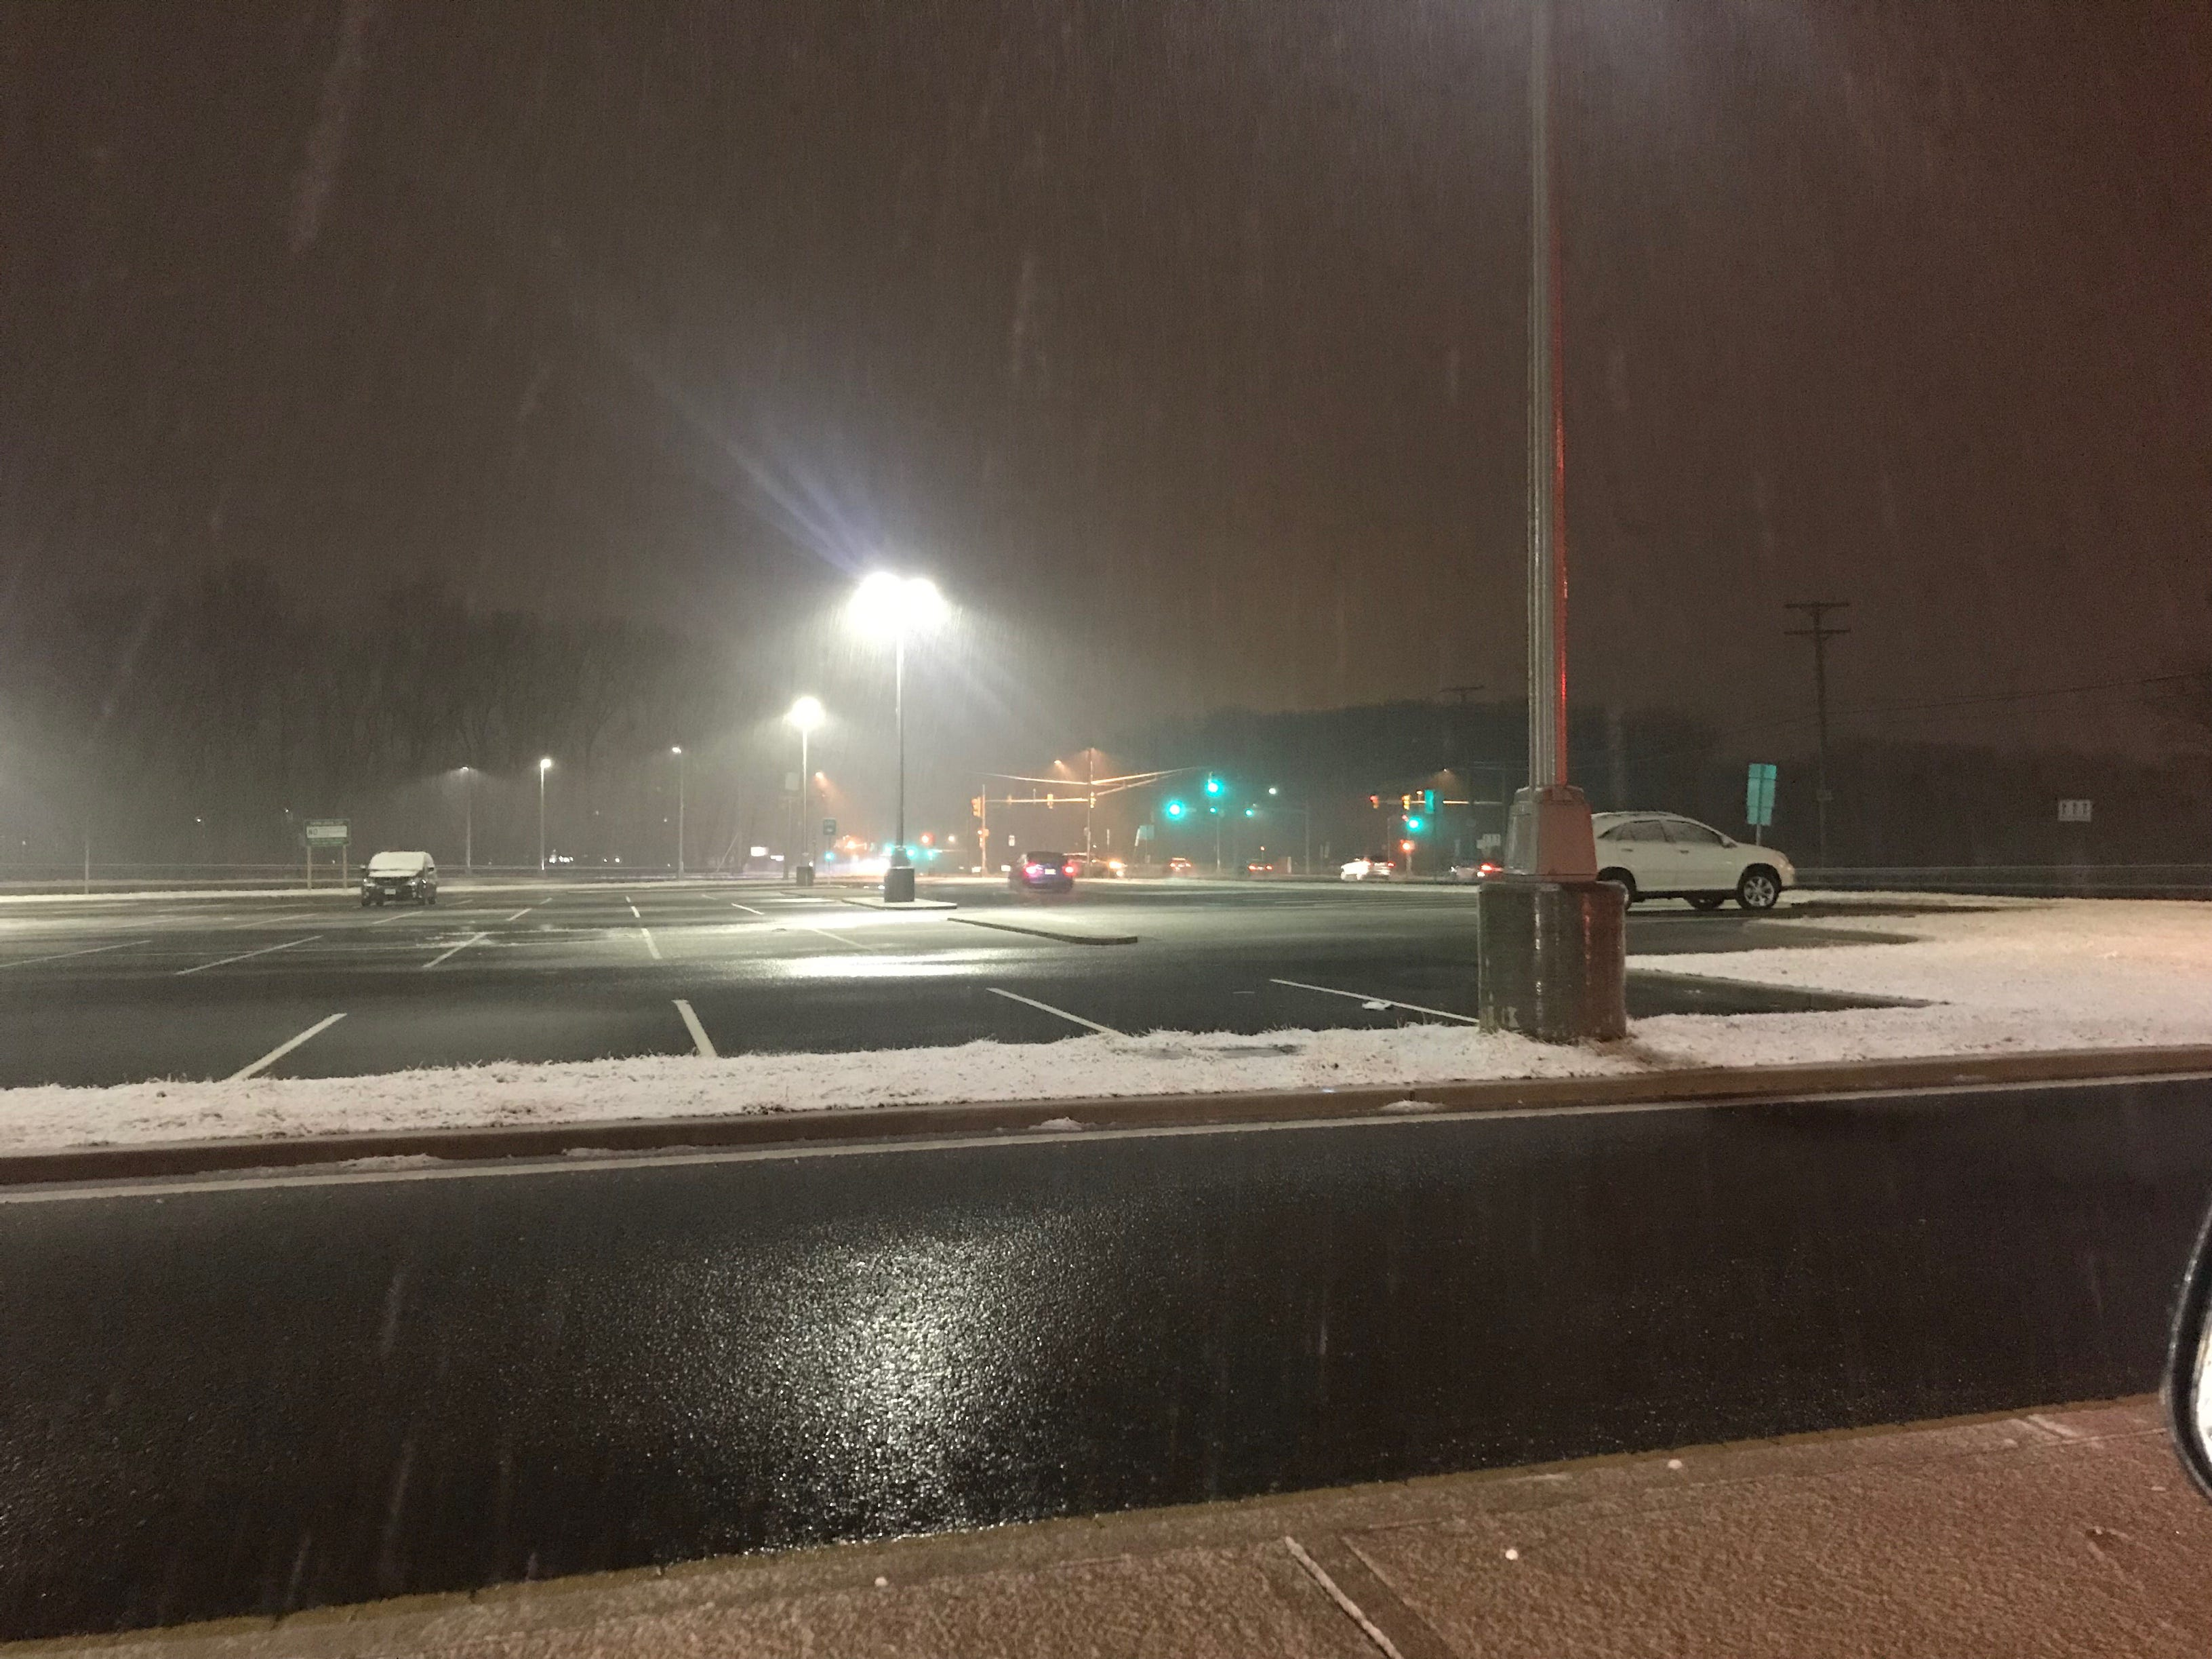 The snow starts to fall in Eatontown.